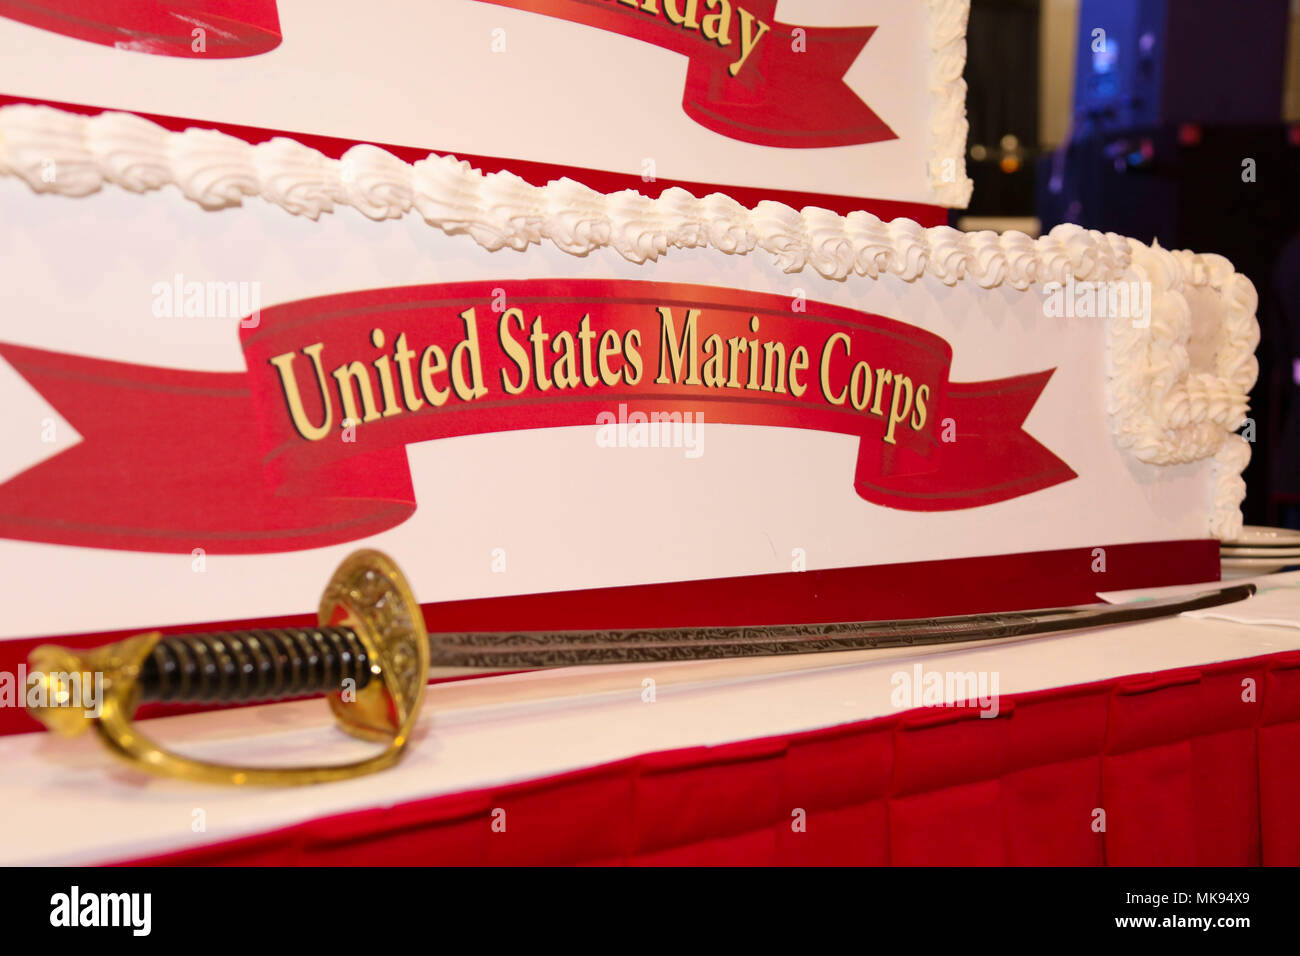 A Noncommissioned Officer Sword Sits On Display Next To The